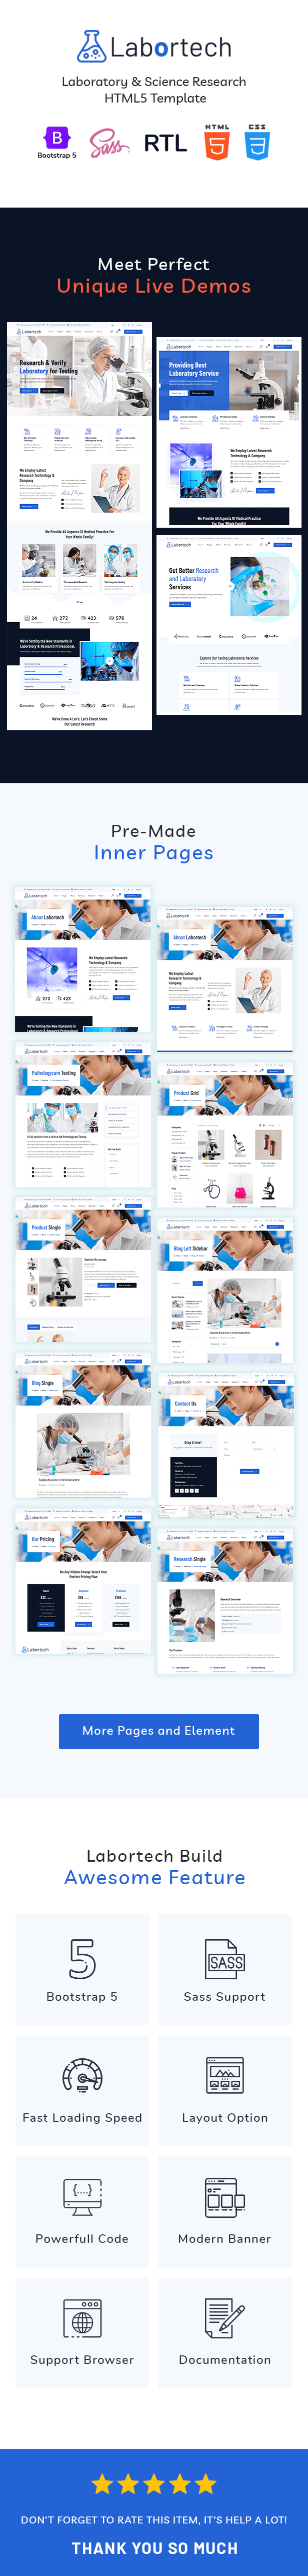 Labortech - Laboratory & Science Research HTML5 Template - 1